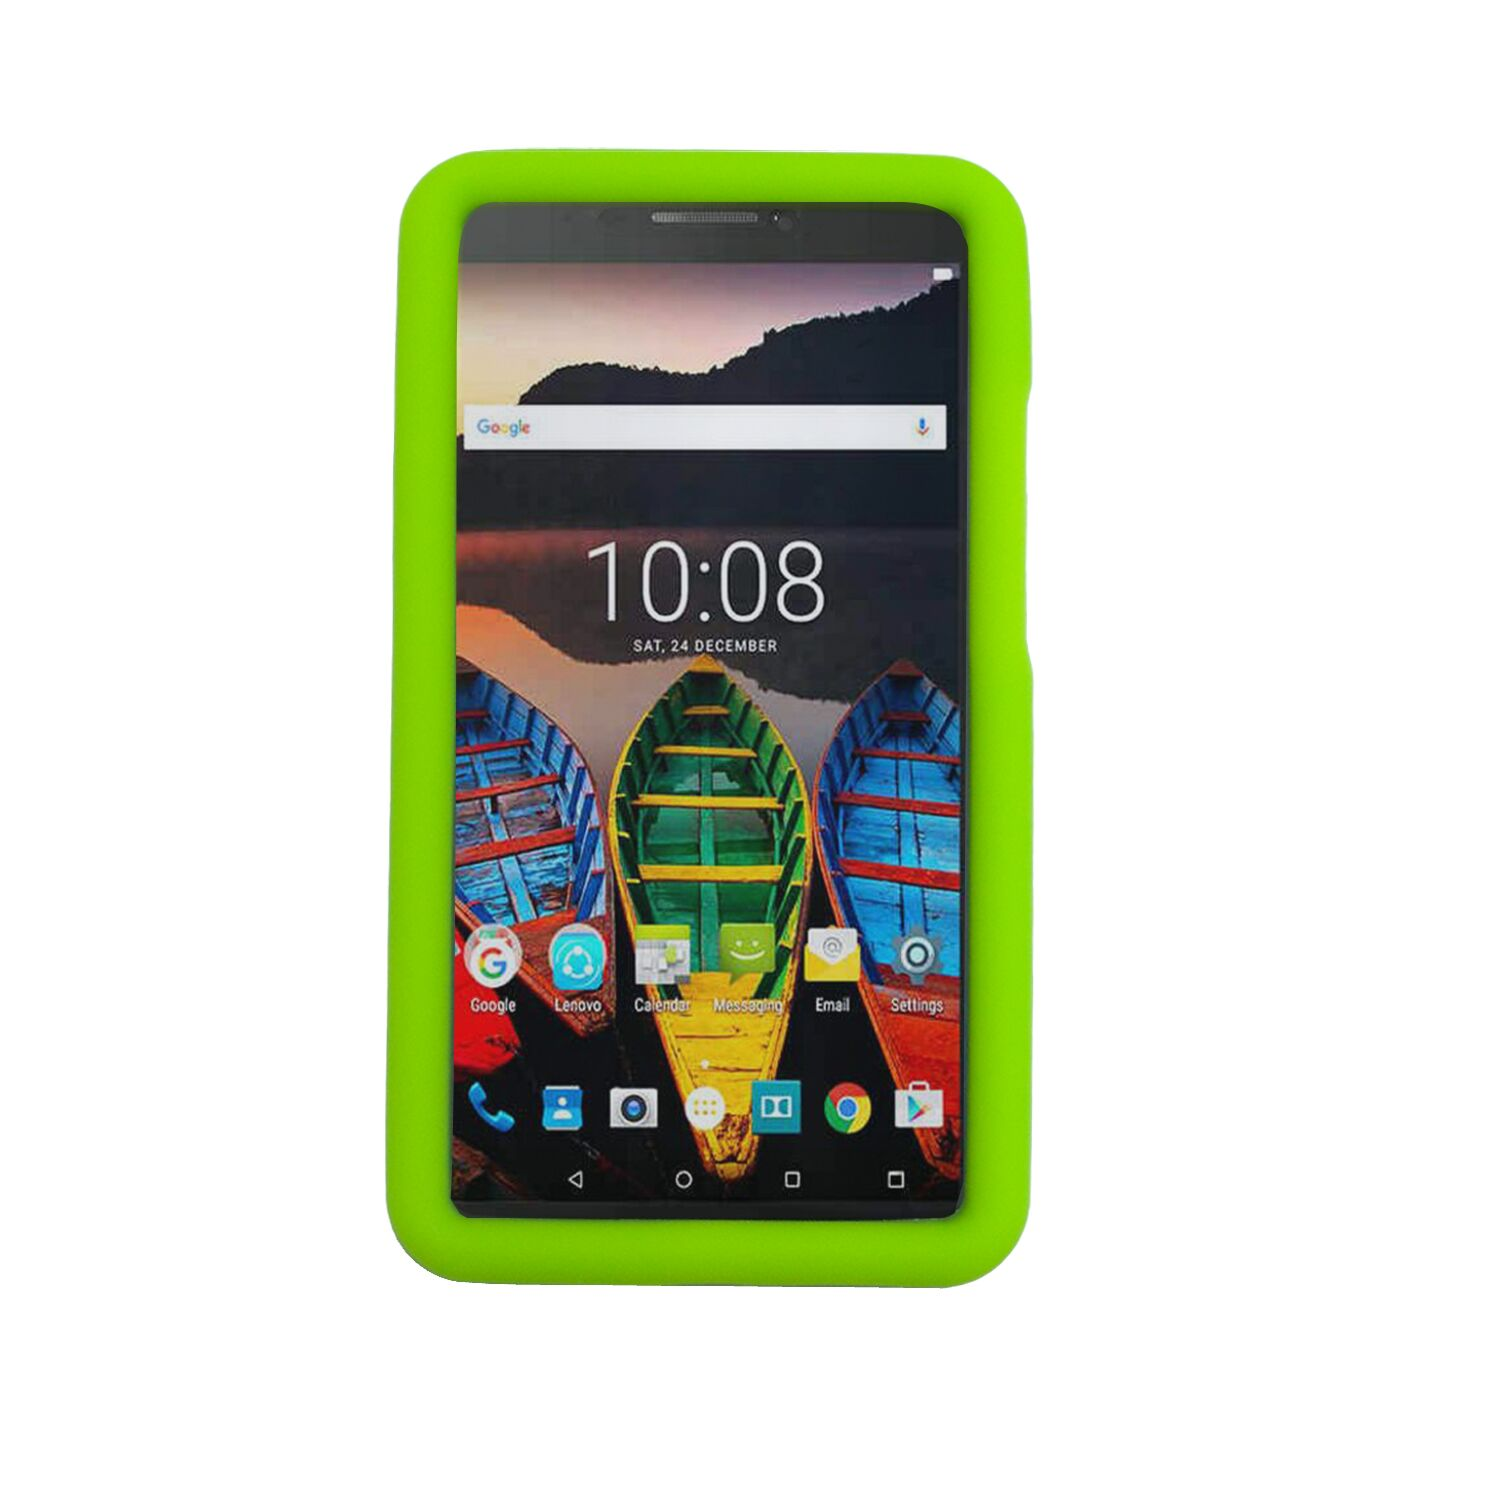 MingShore Rugged Silicone Case Cover For Lenovo Tab 3 7 Plus 7.0 Durable Protective Case For Lenovo TB-7703X TB-7703F 7.0 Tablet mingshore durable protective case for yoga tablet 3 850 8 0 silicone cover for lenovo yoga tab 3 model 850f m l 8 0 tablet case